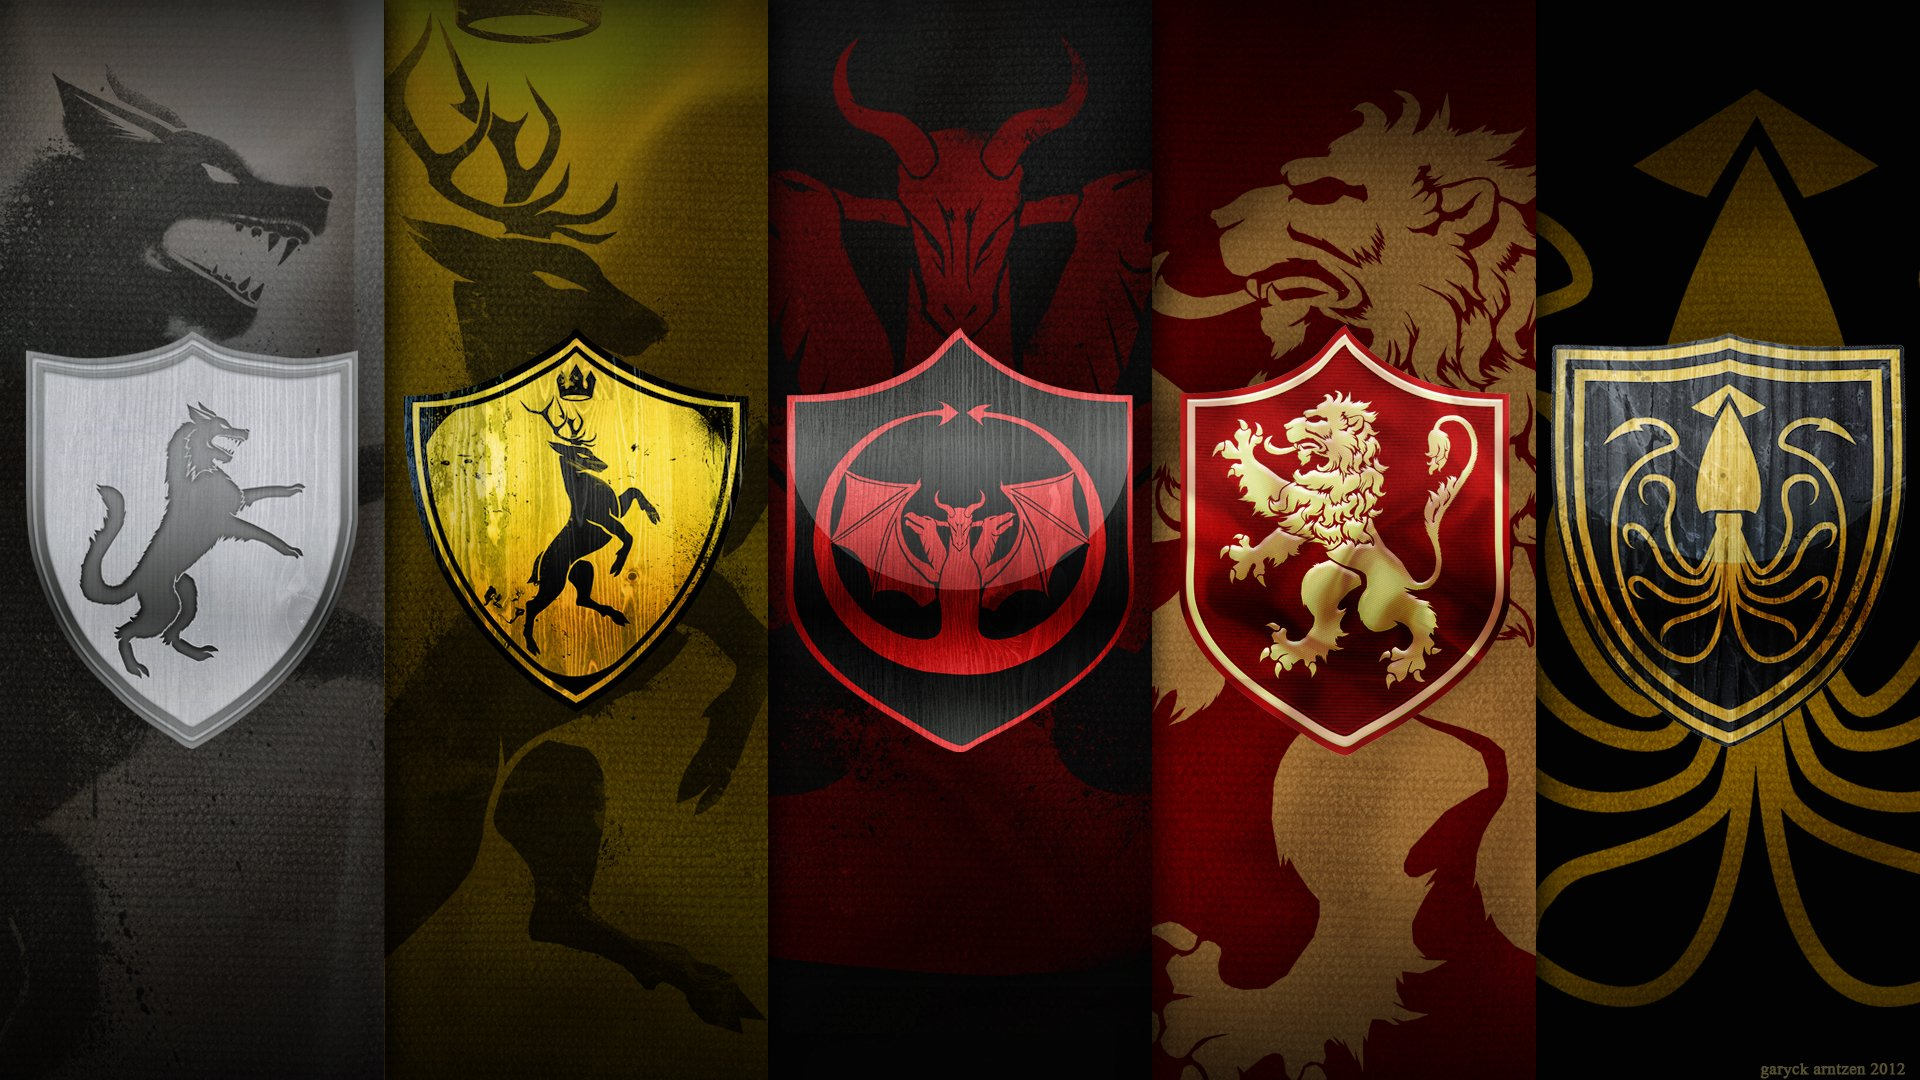 1342 Game Of Thrones HD Wallpapers | Backgrounds - Wallpaper Abyss